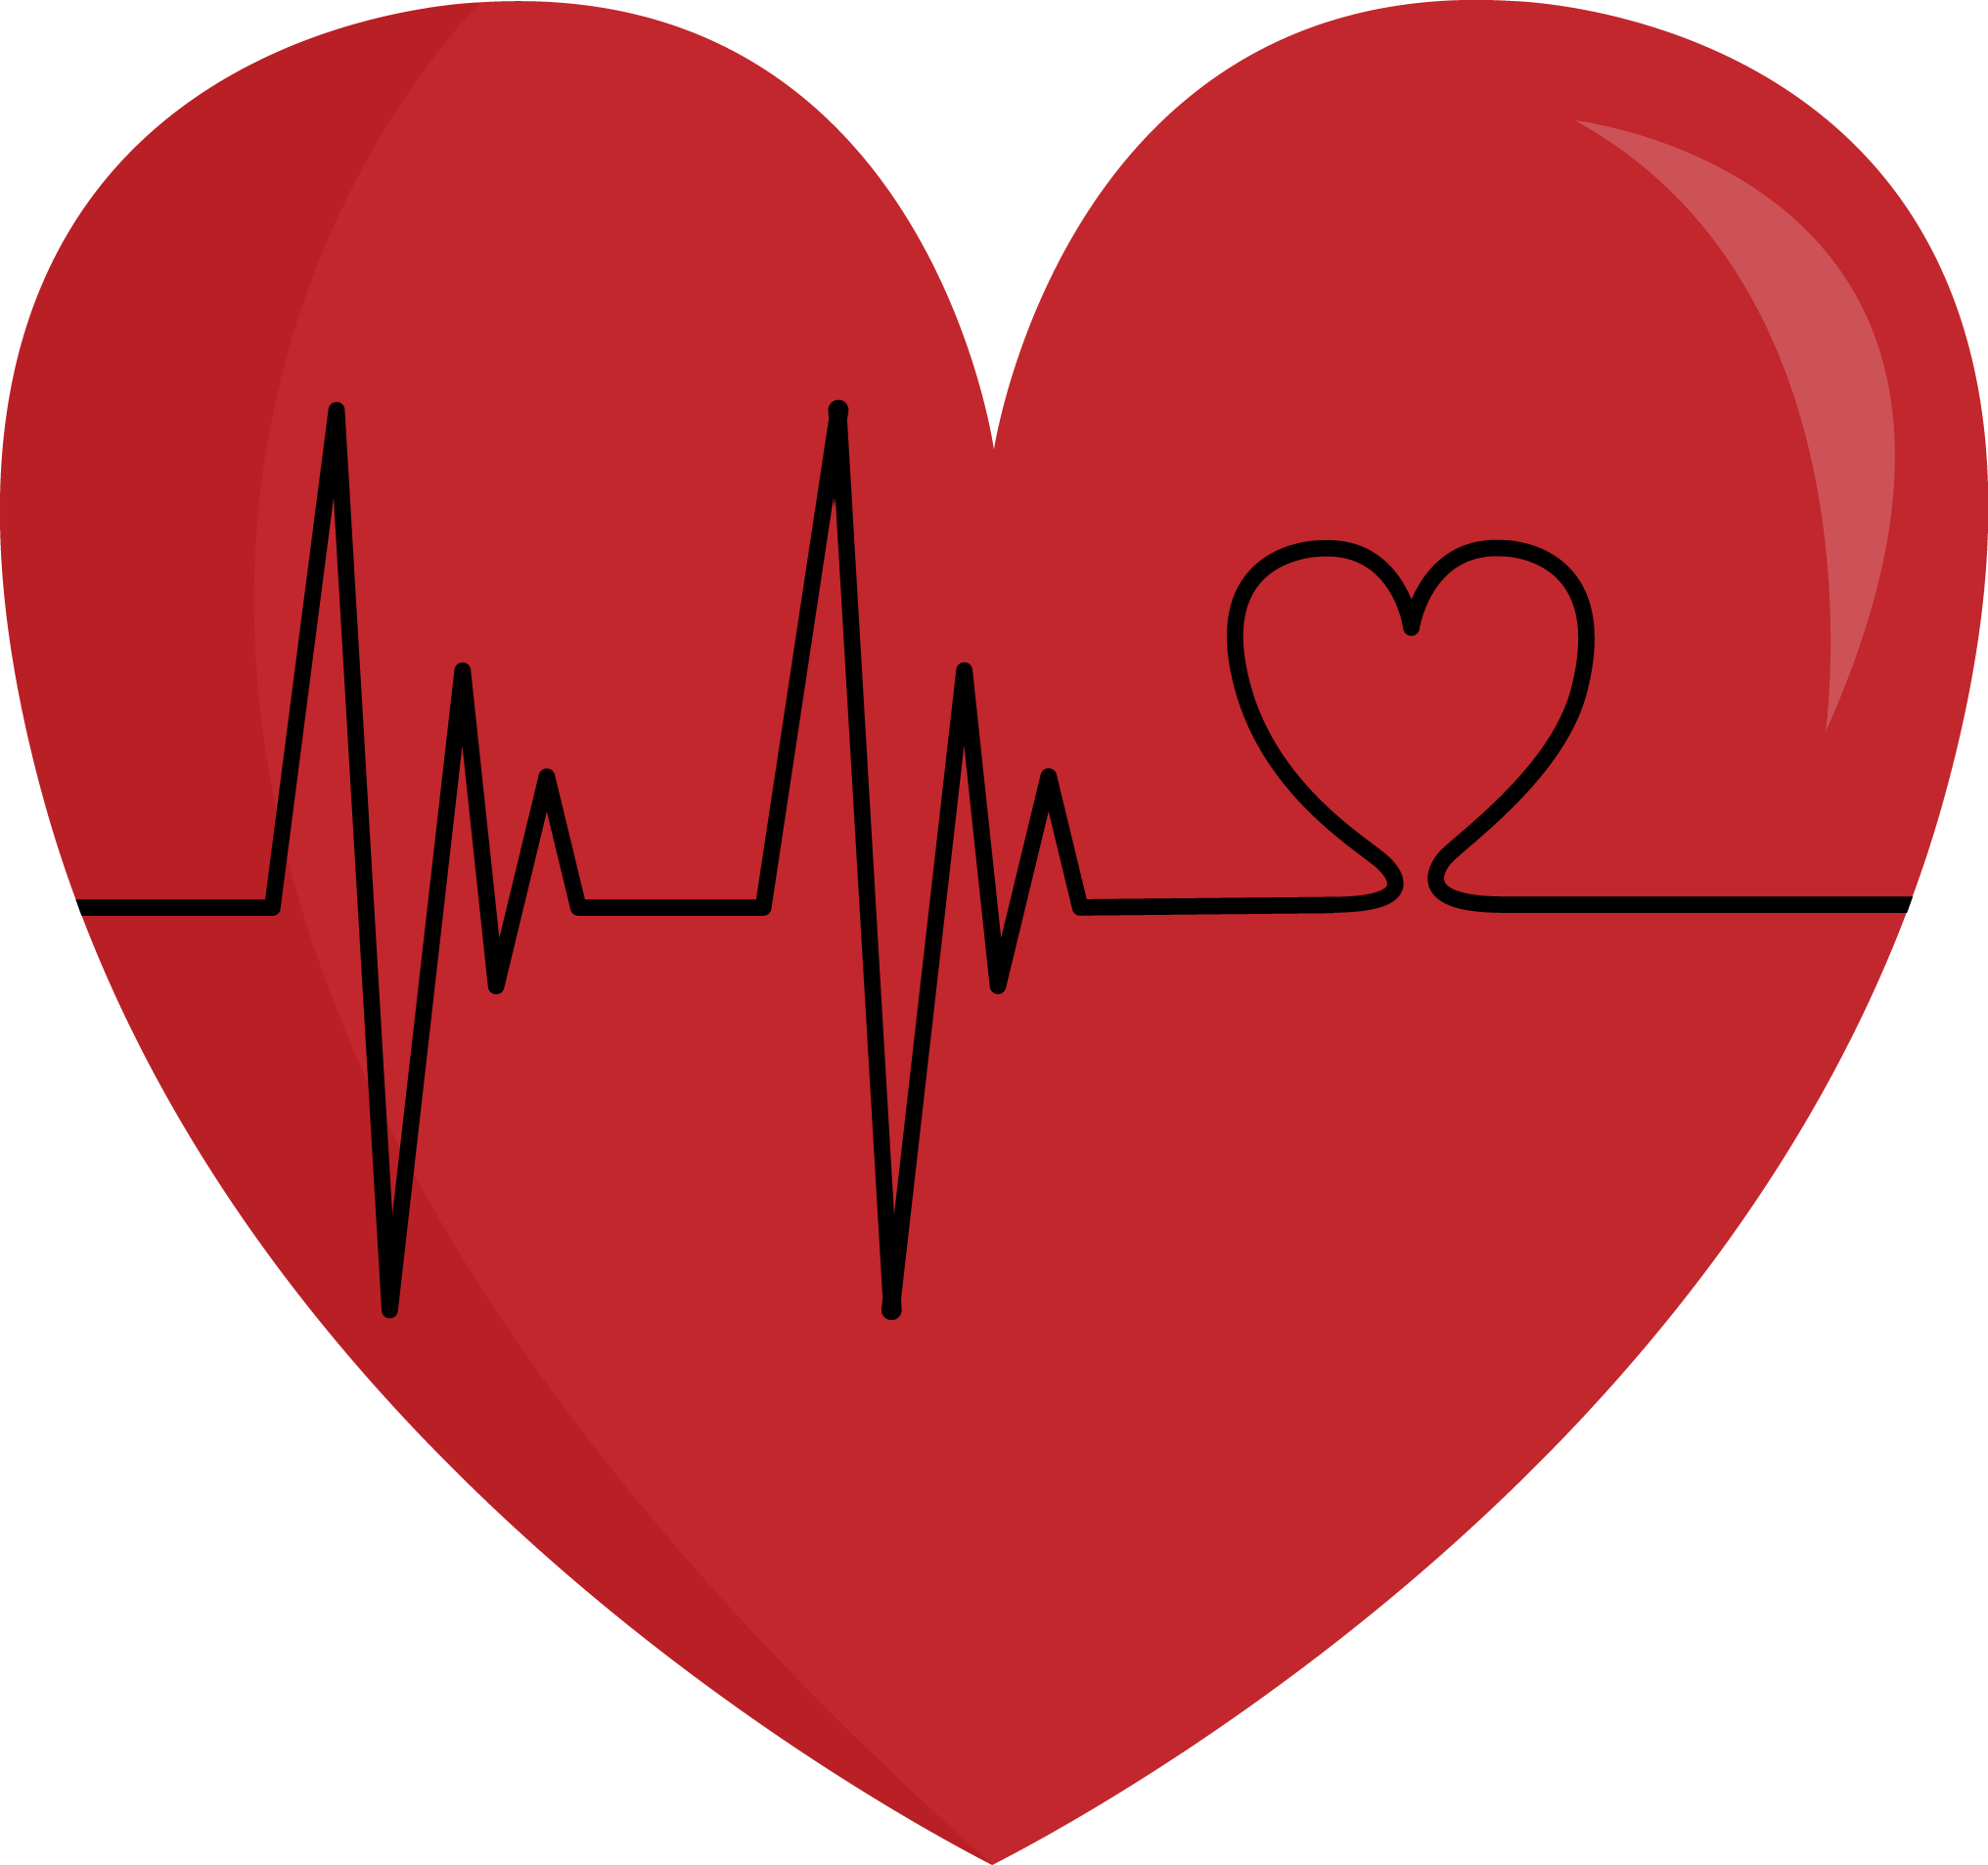 Collection of Heartbeat clipart.